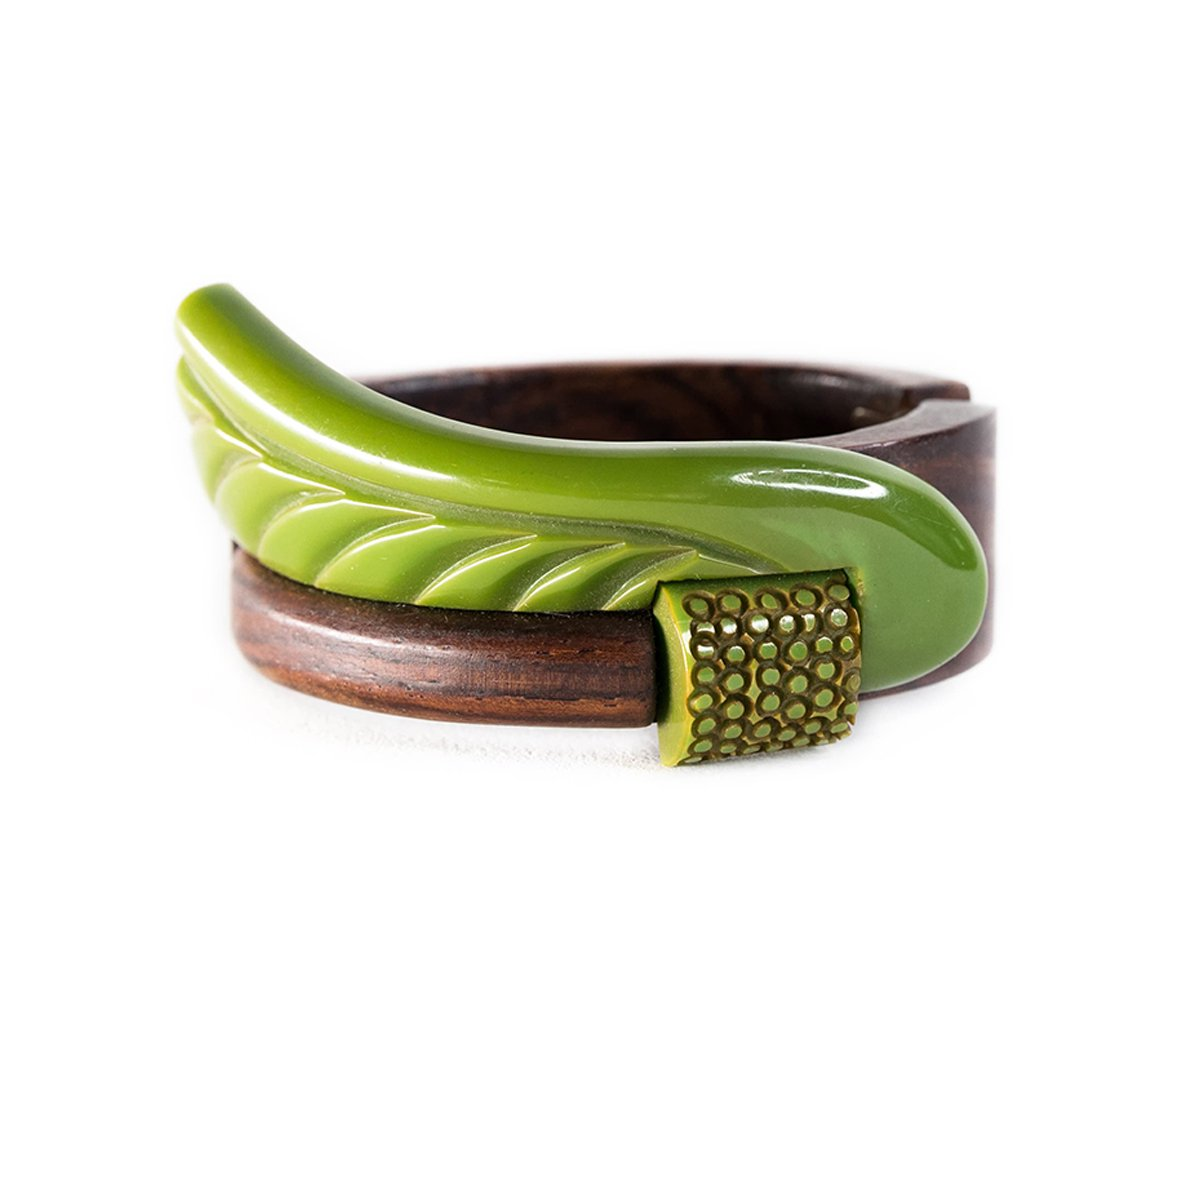 1940s Art Deco Bracelet, Green Bakelite & Wood Clamper